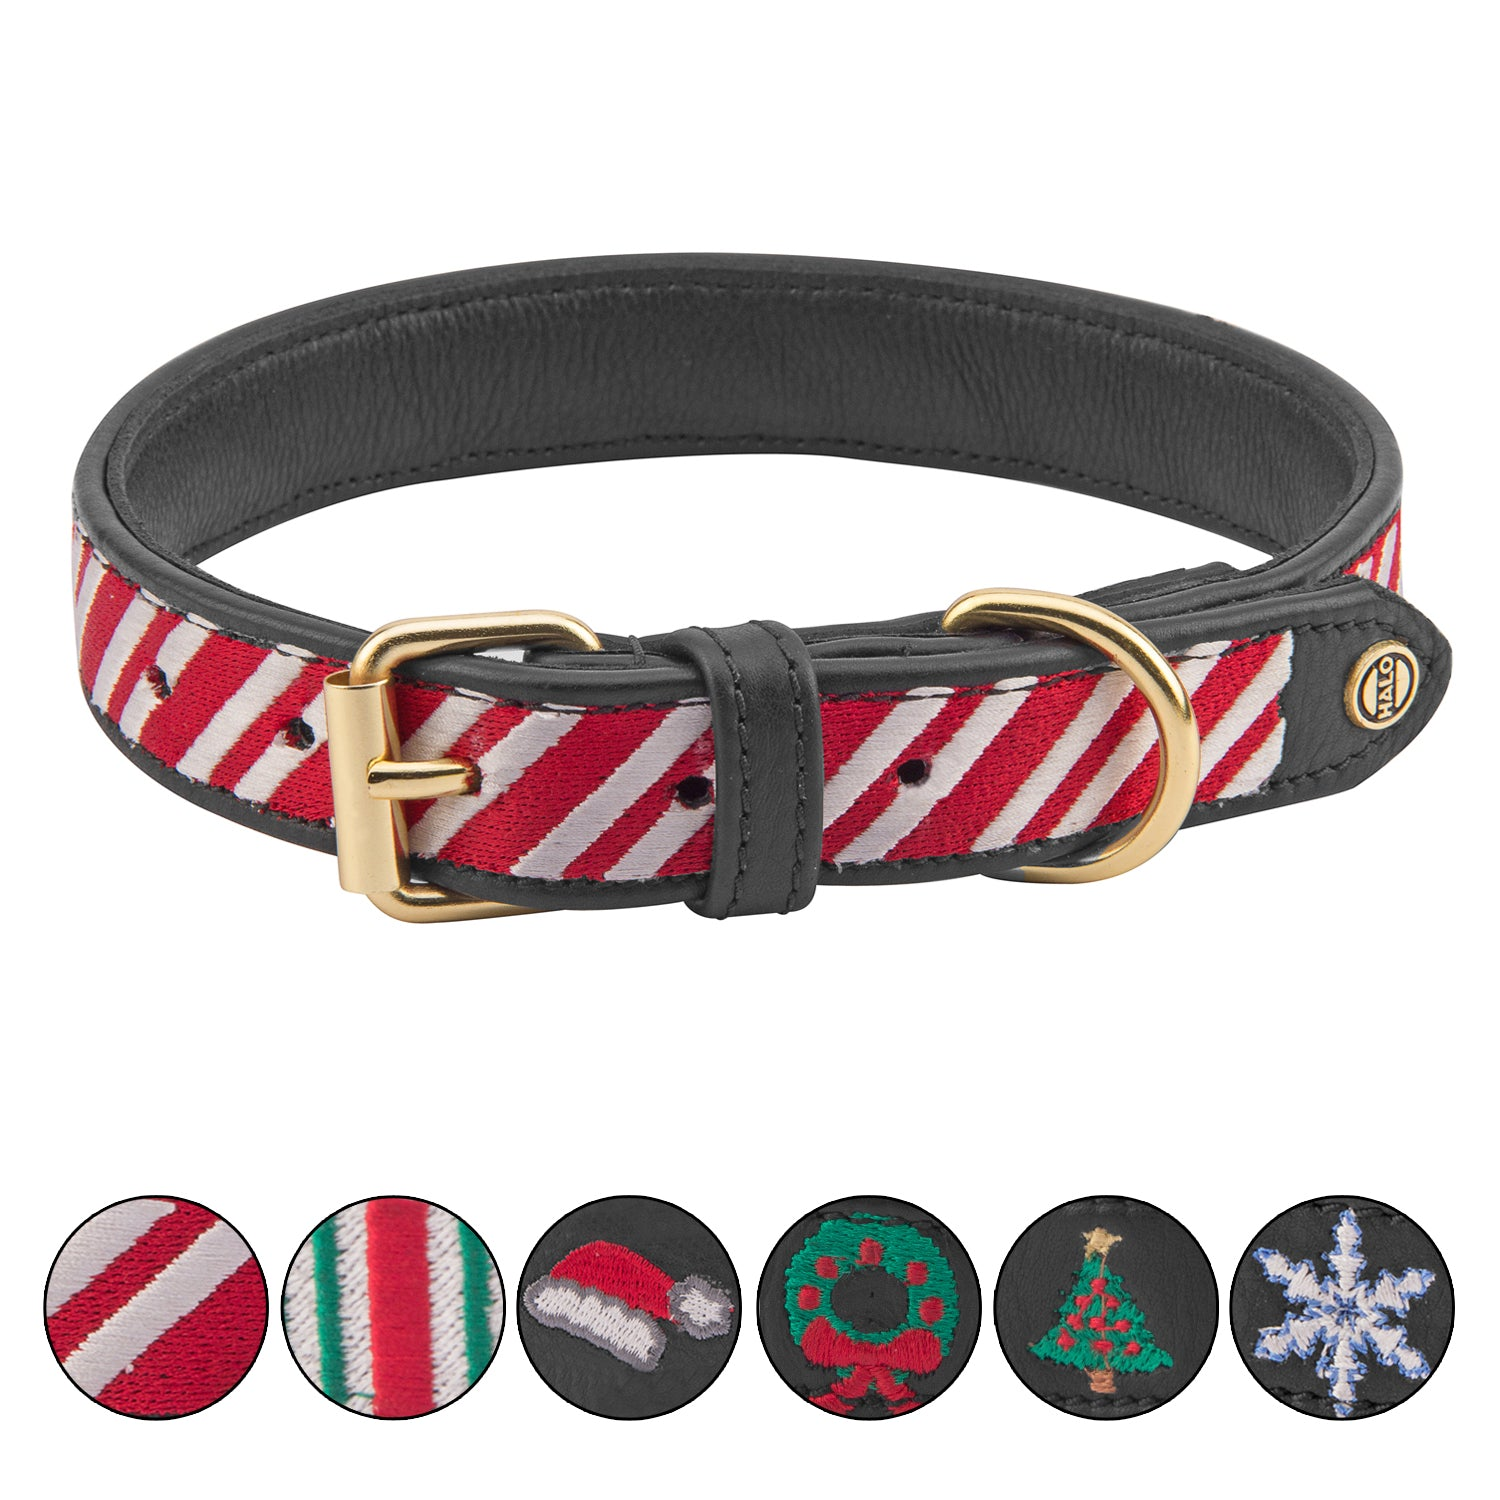 Halo Dog Collar - Leather with Candy Cane Embroidery_2046